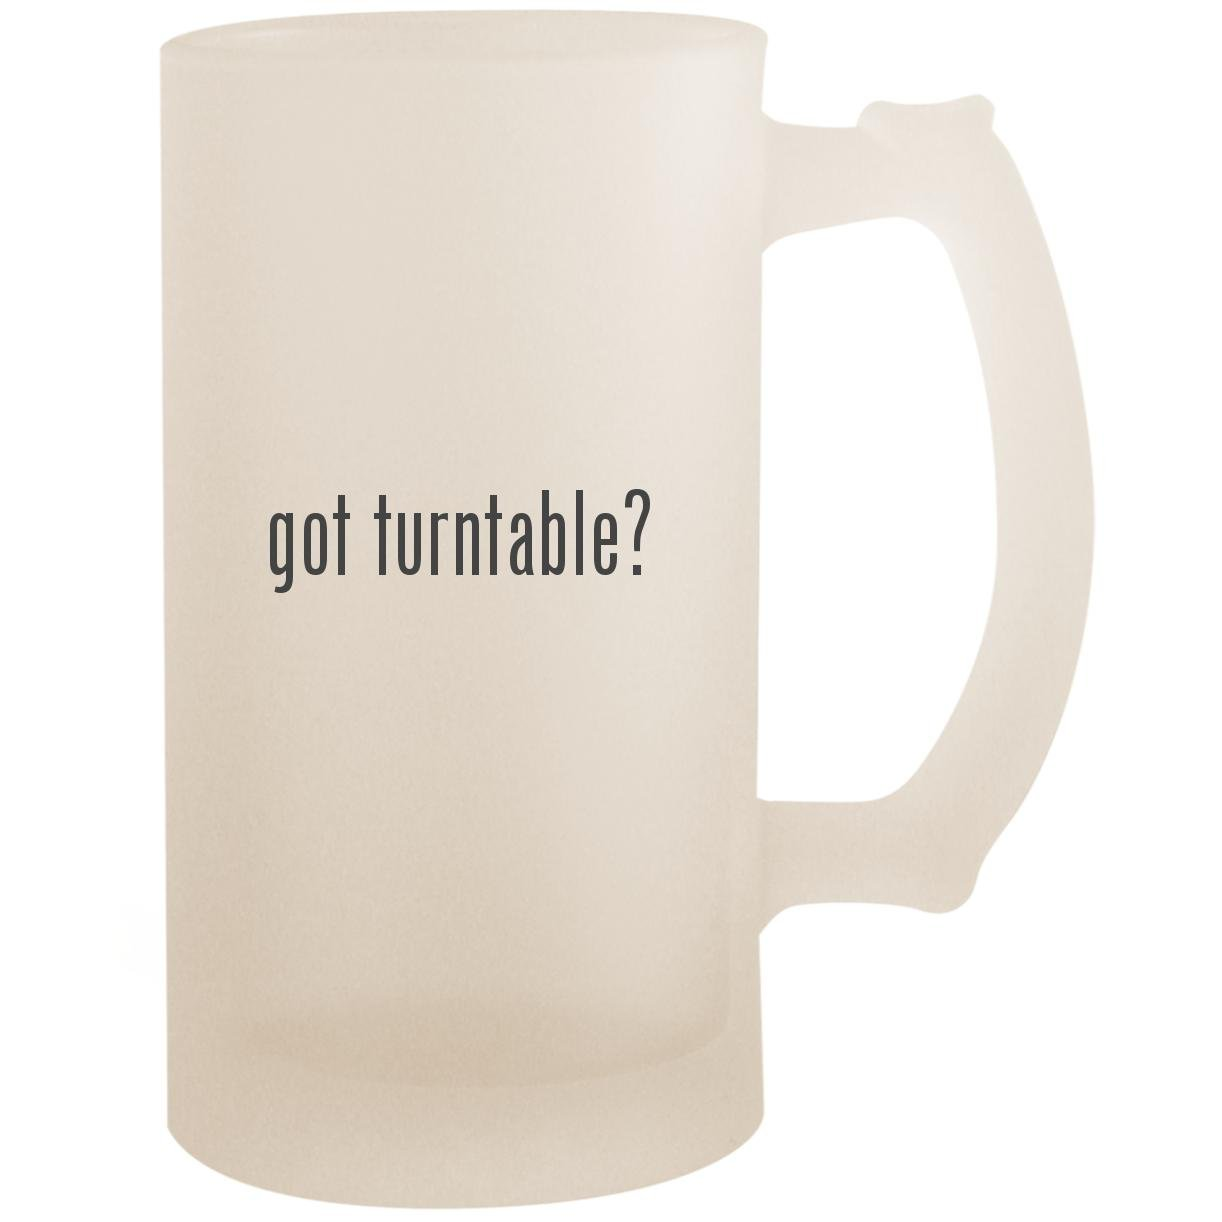 got turntable? - 16oz Glass Frosted Beer Stein Mug, Frosted